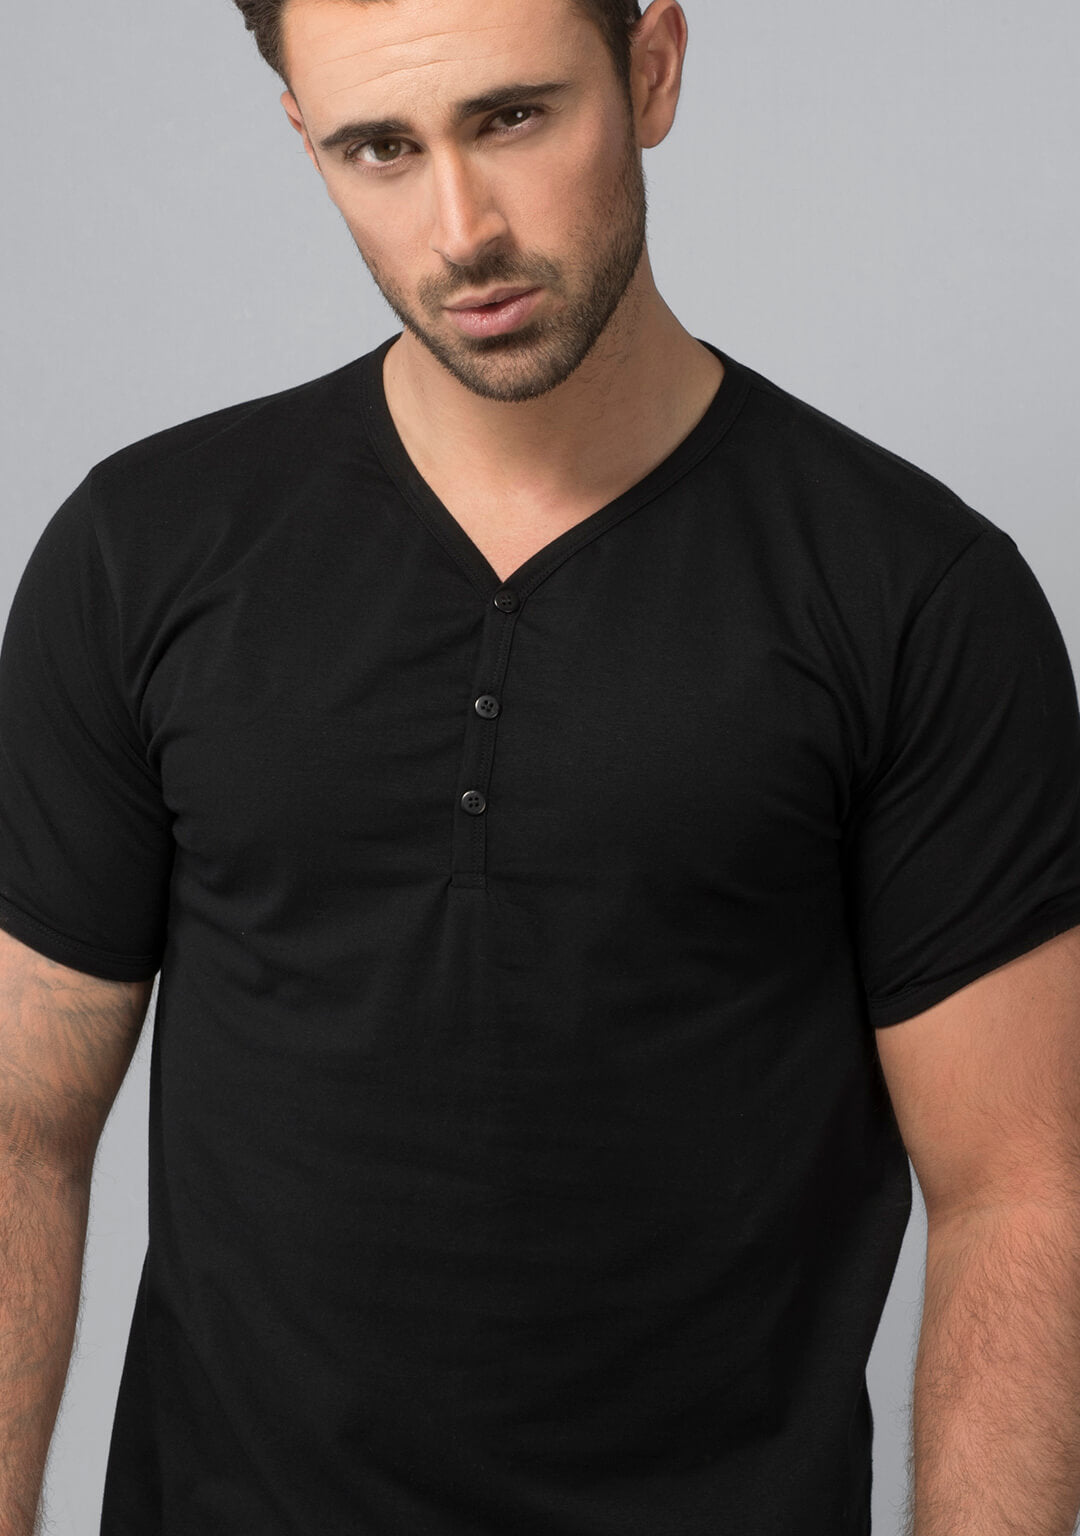 Henley T-shirt in Jet Black